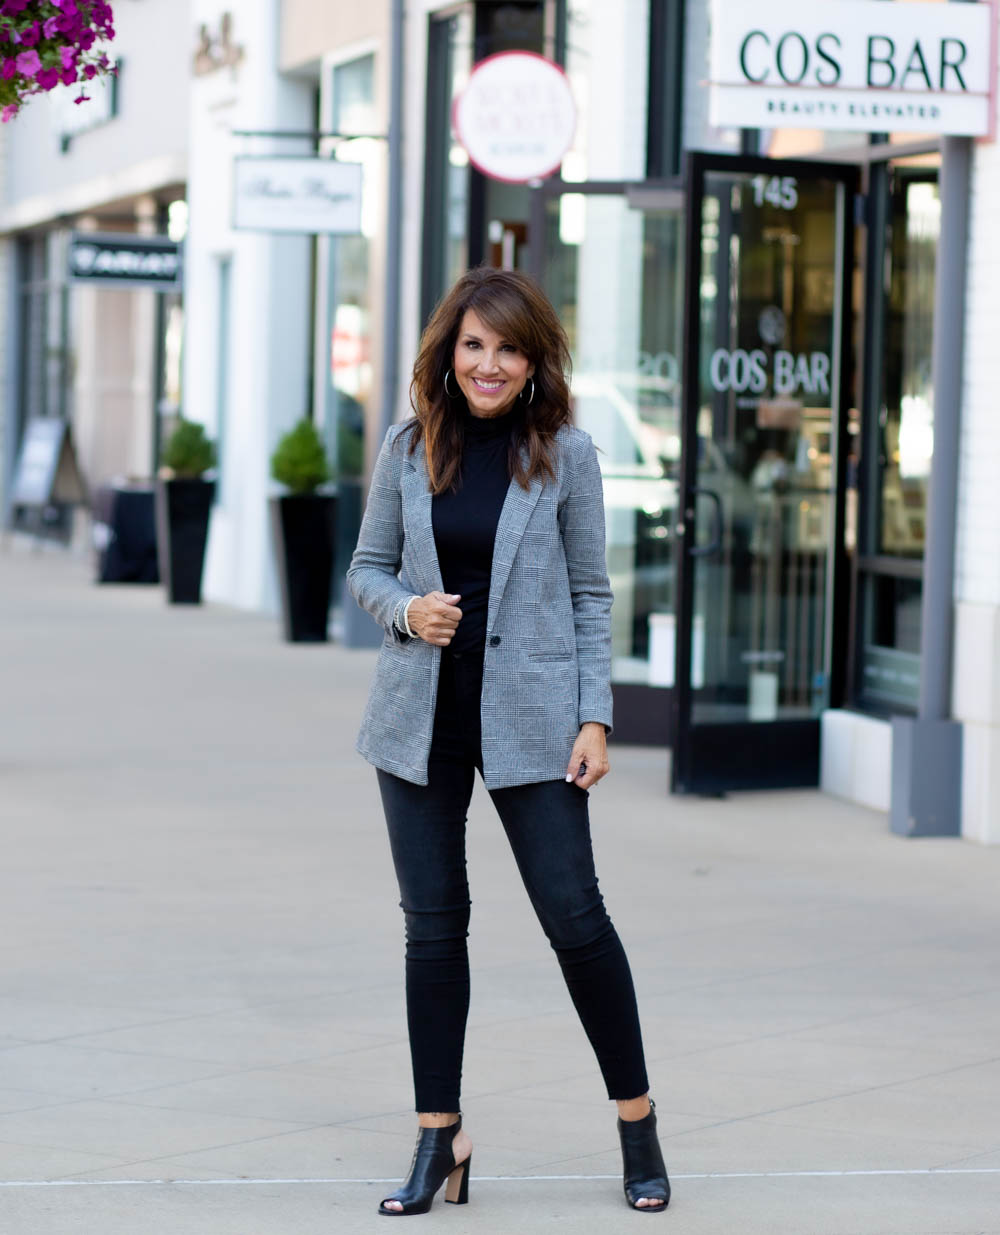 5 Ways to Look Chic on a Budget